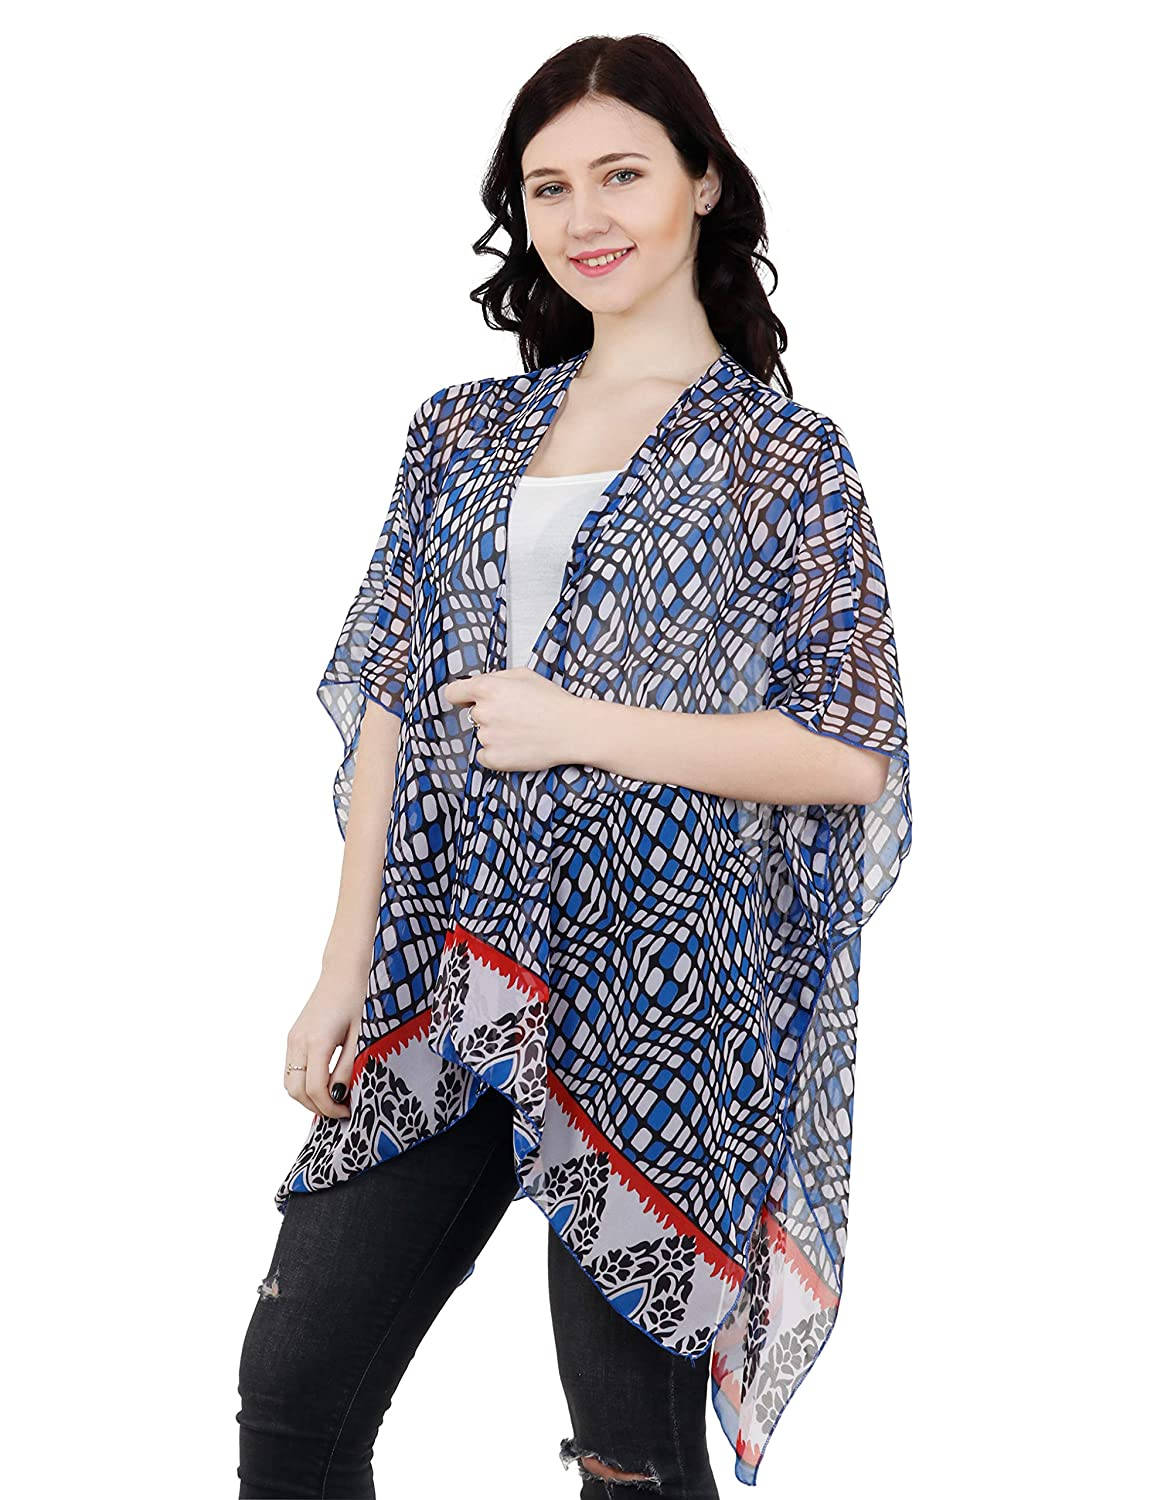 bluee W Border TC Tanu Collections Women's Beach Cover up Swimsuit Kimono Cardigan with Bohemian Floral Print